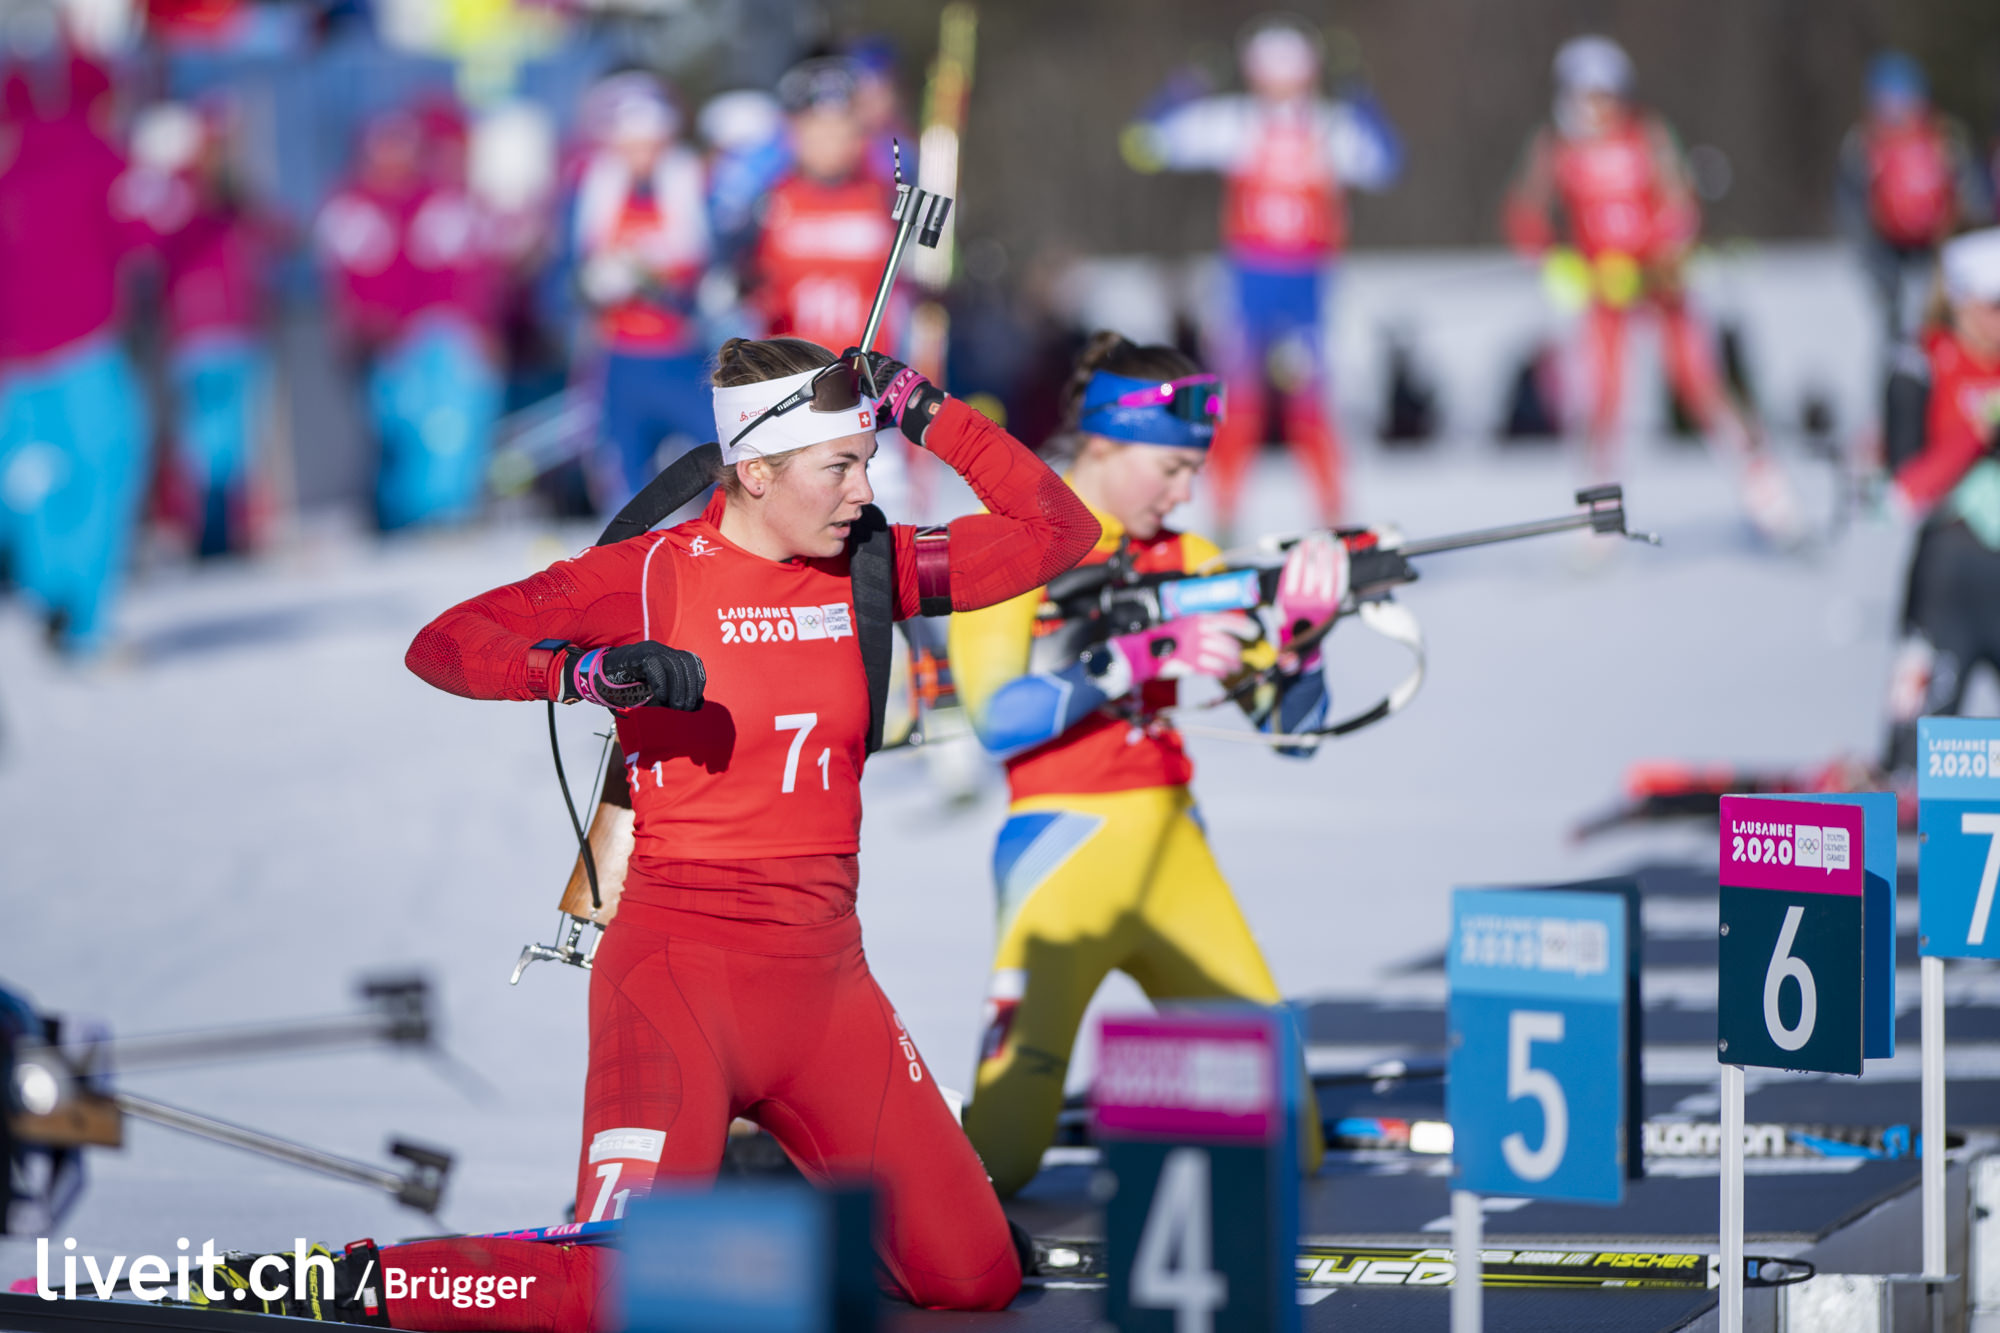 SWITZERLAND LES TUFFES YOG LAUSANNE2020 BIATHLON SINGLE MIXED RELAY